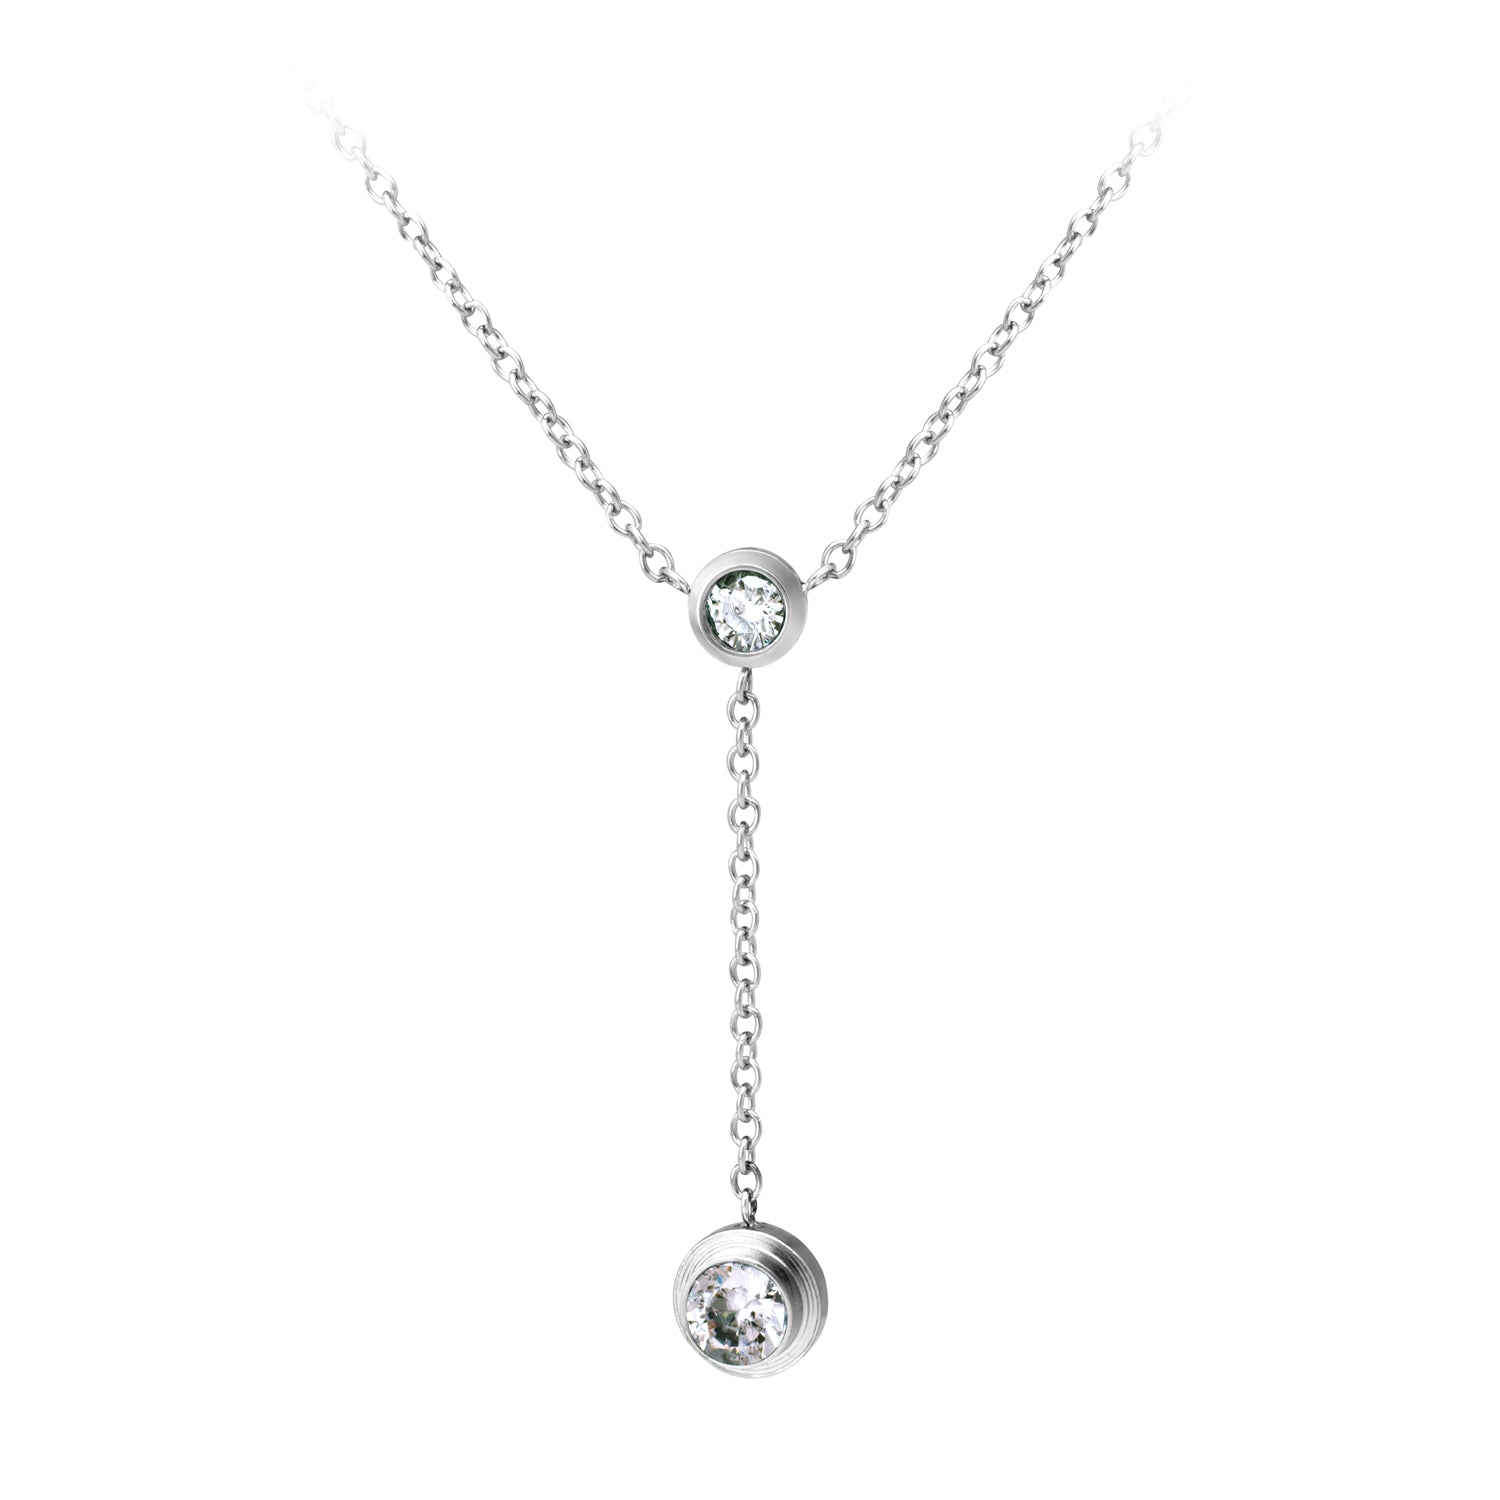 MNC-N212-A Stainless Steel Drop Necklace